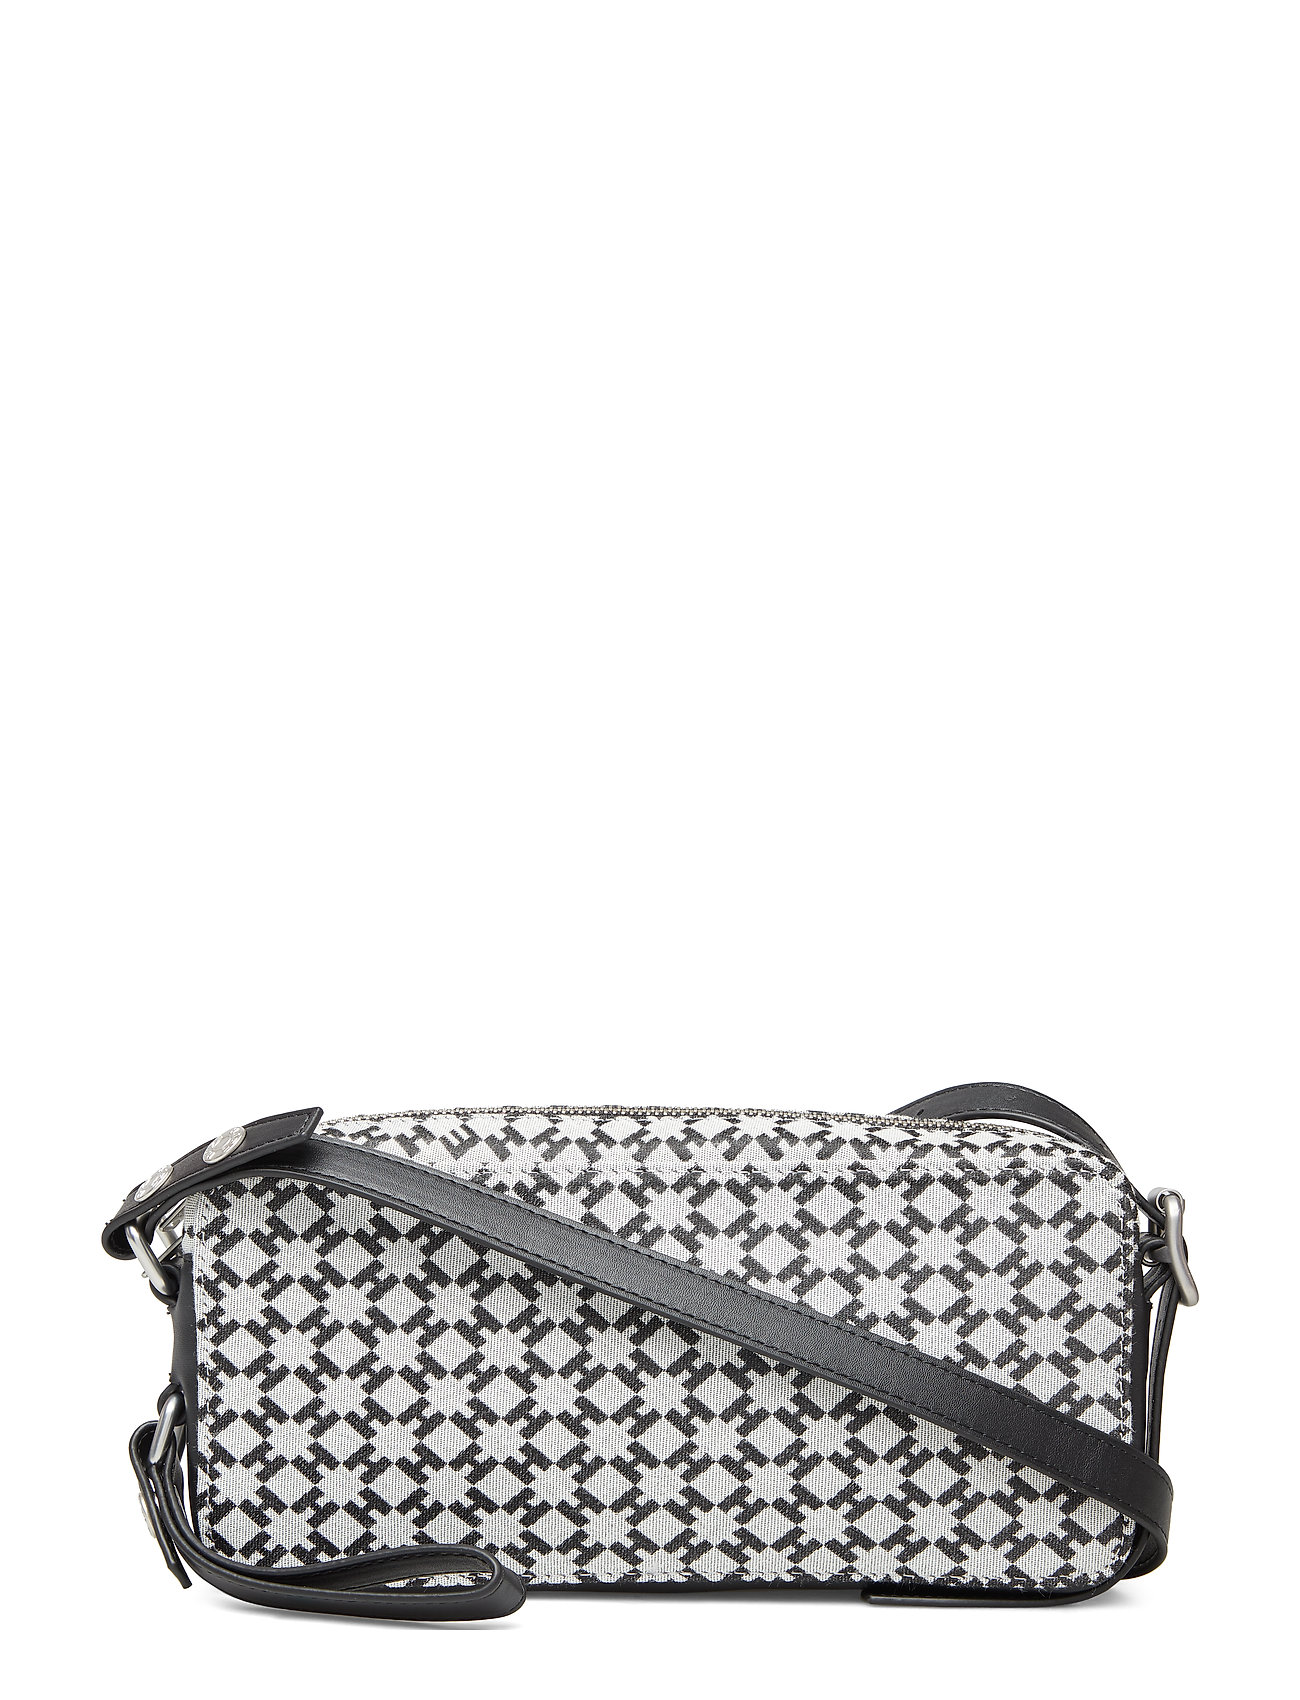 Hope H Cross Body - H LOGO BLACK